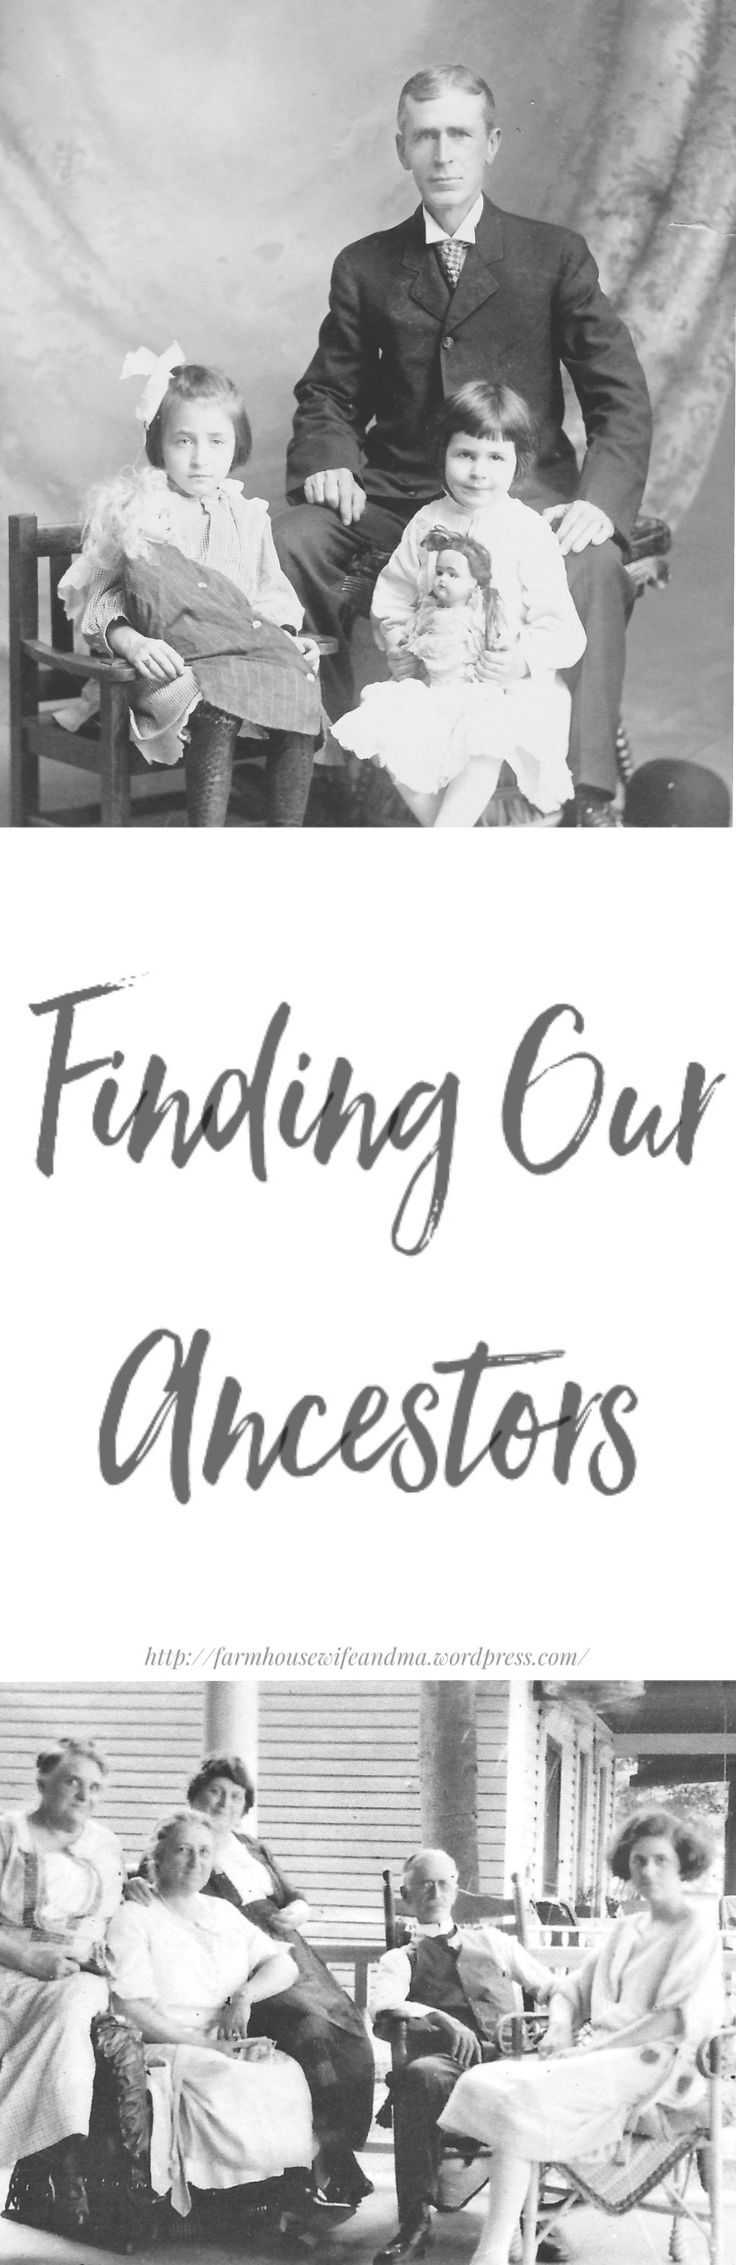 Greetings, Family History, not just for 'old/mature' people. Discovering ones family today is at our finger tips | http://farmhousewifeandma.wordpress.com/